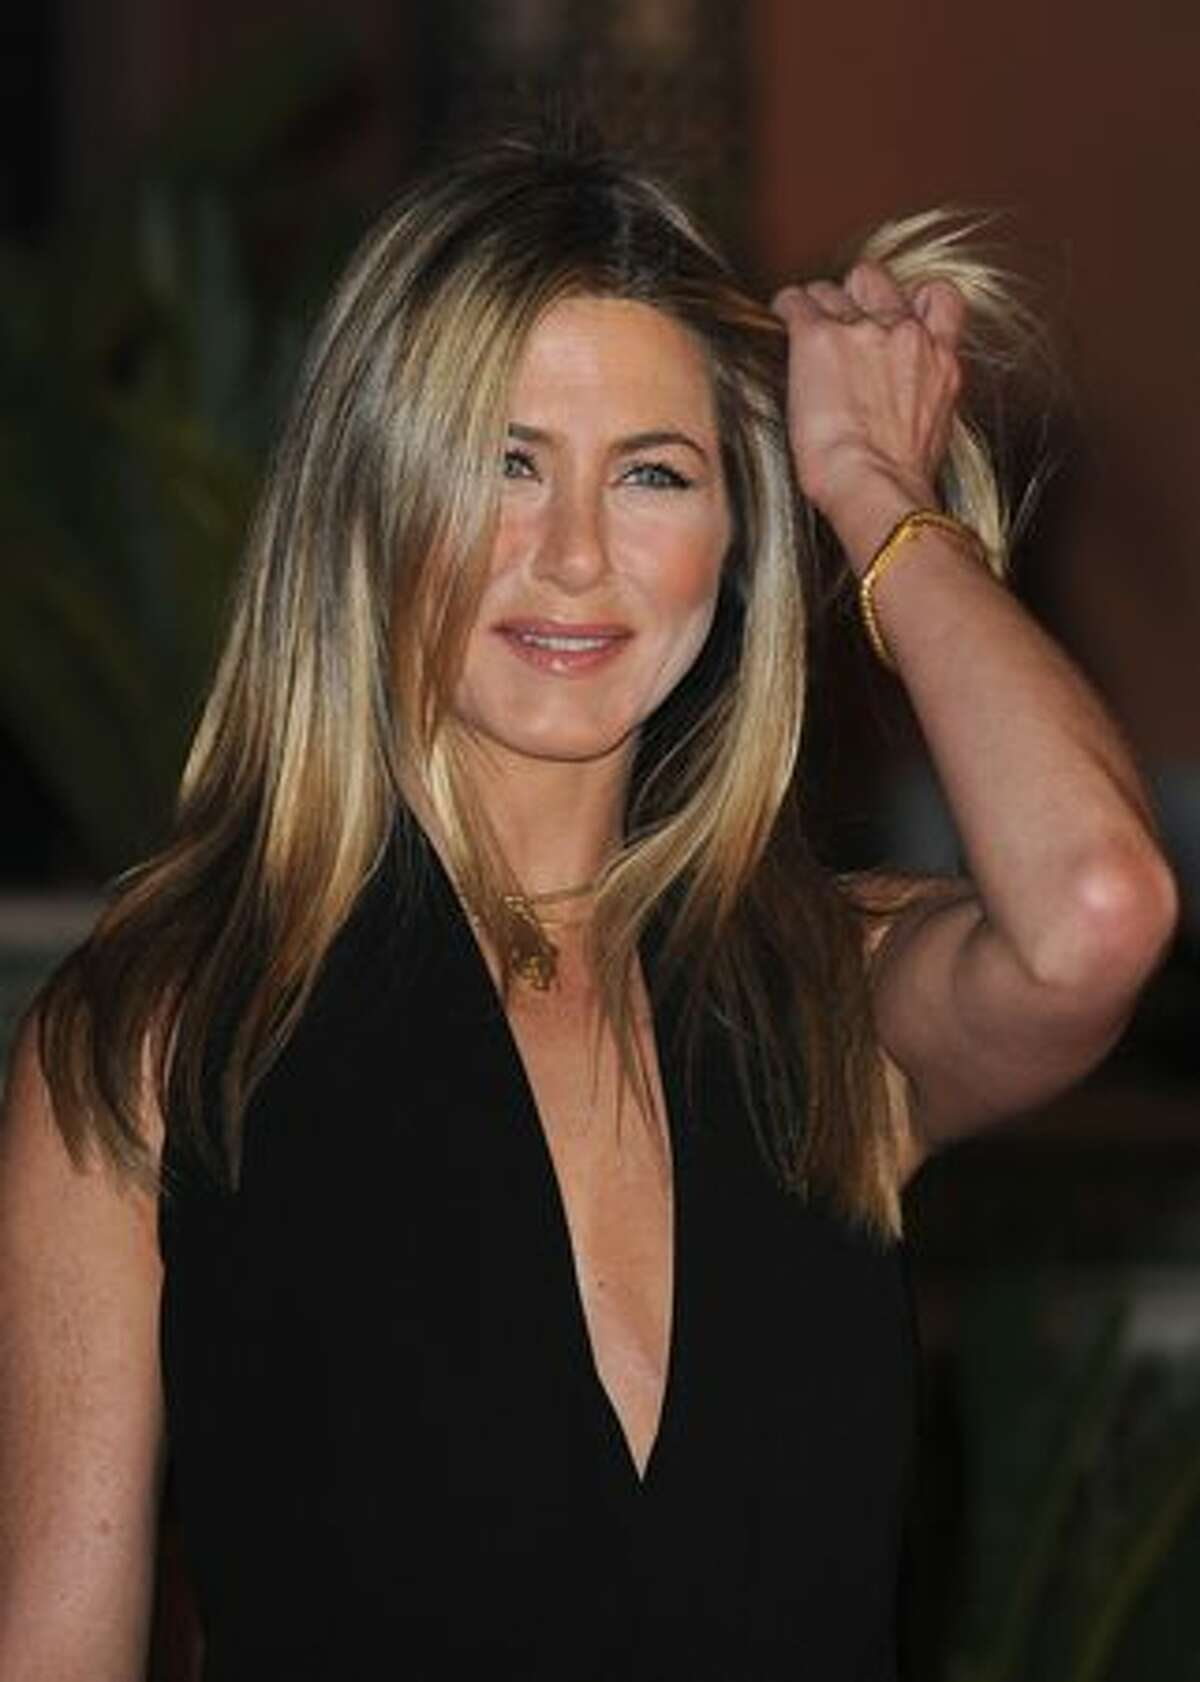 Actress Jennifer Aniston attends the Mamounia hotel inauguration in Marrakech, Morocco.